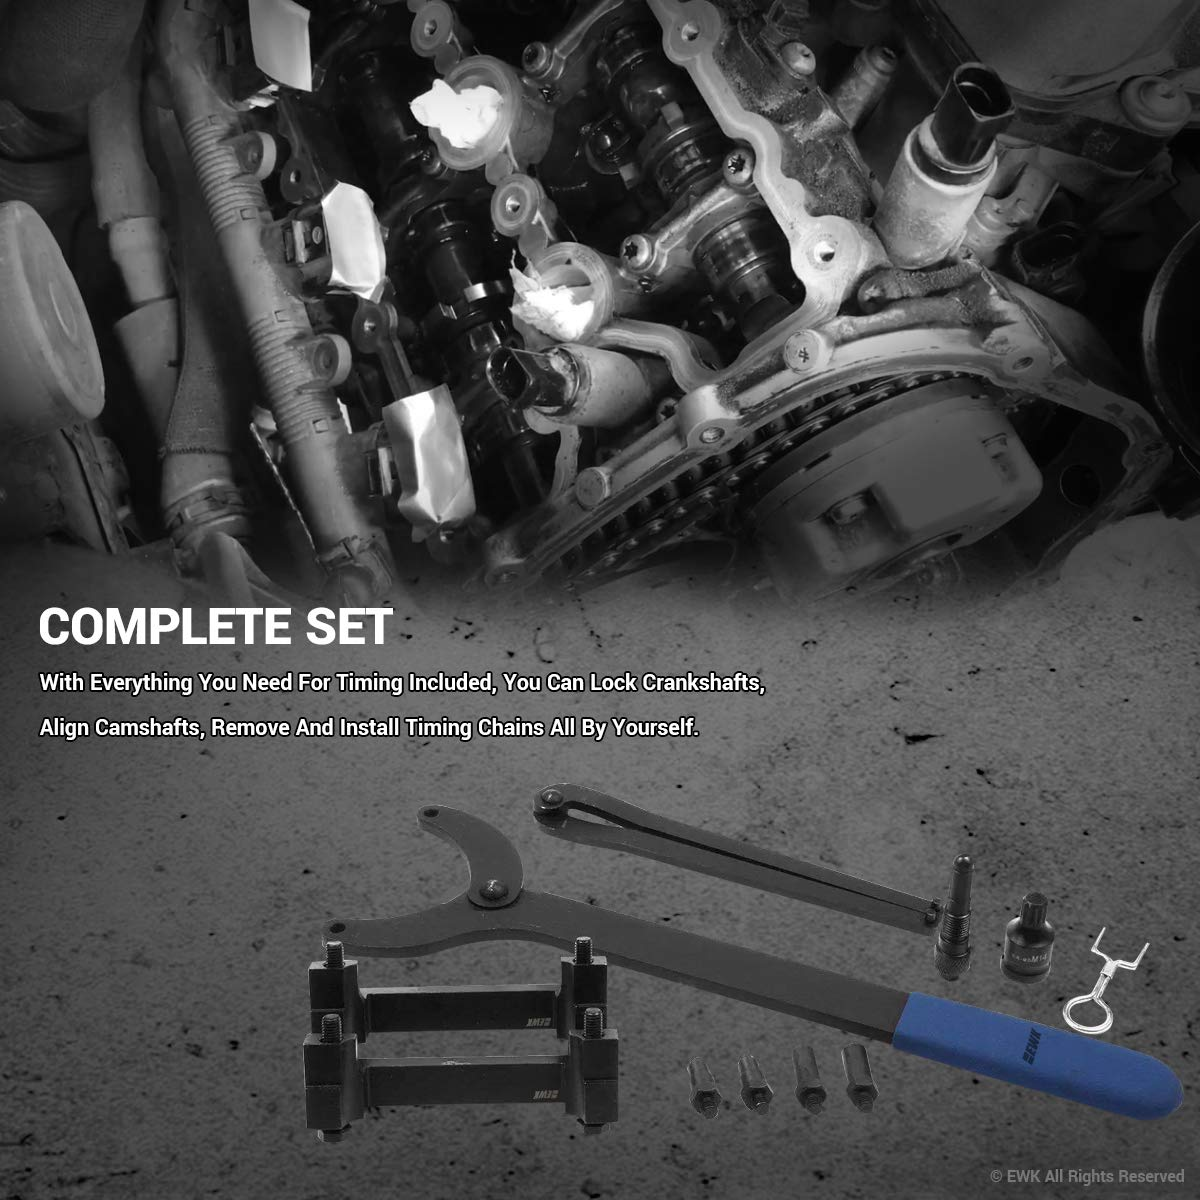 EWK Timing Tool Kit FSI Chain Engine for Audi A4 A6 A8 3.2 Liter V6 by EWK (Image #3)